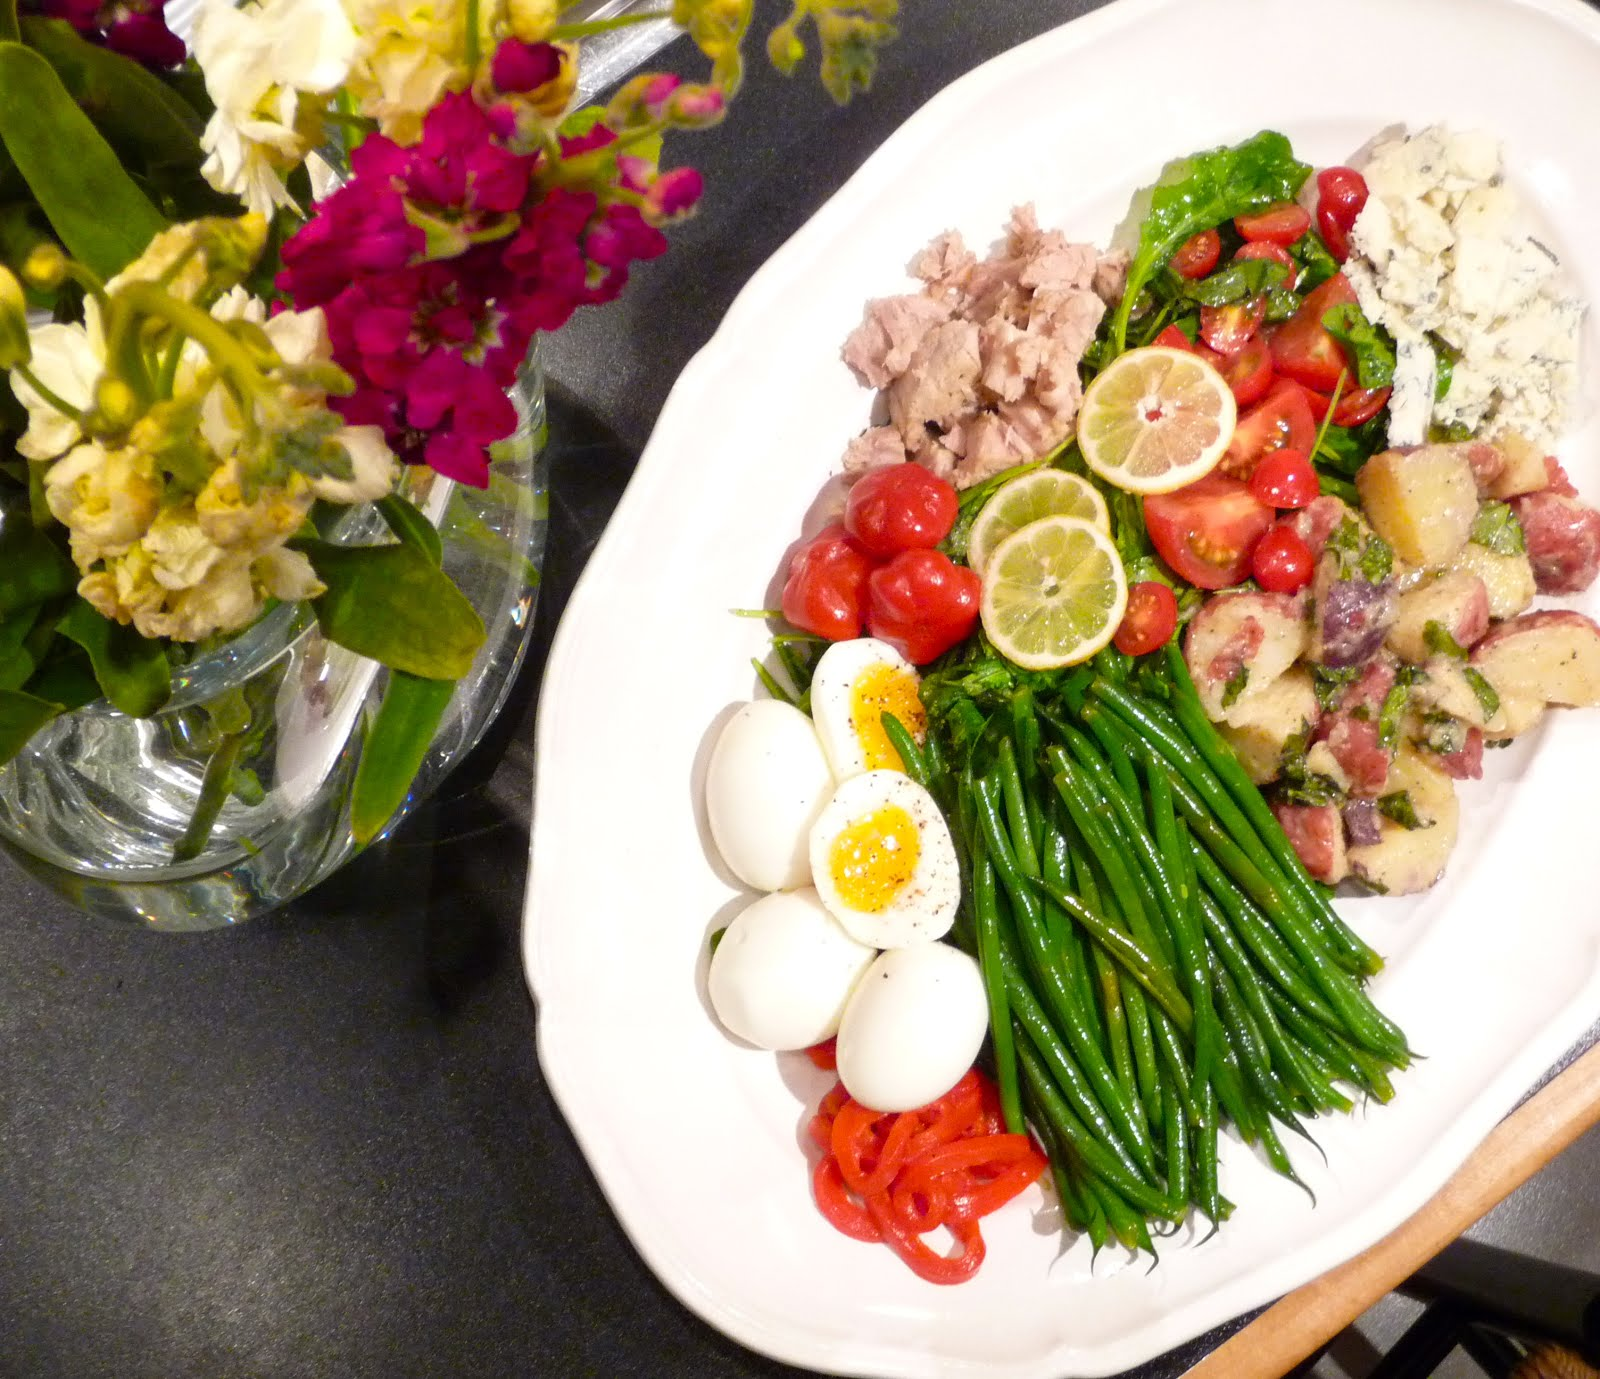 Thursday Night Nicoise Salad